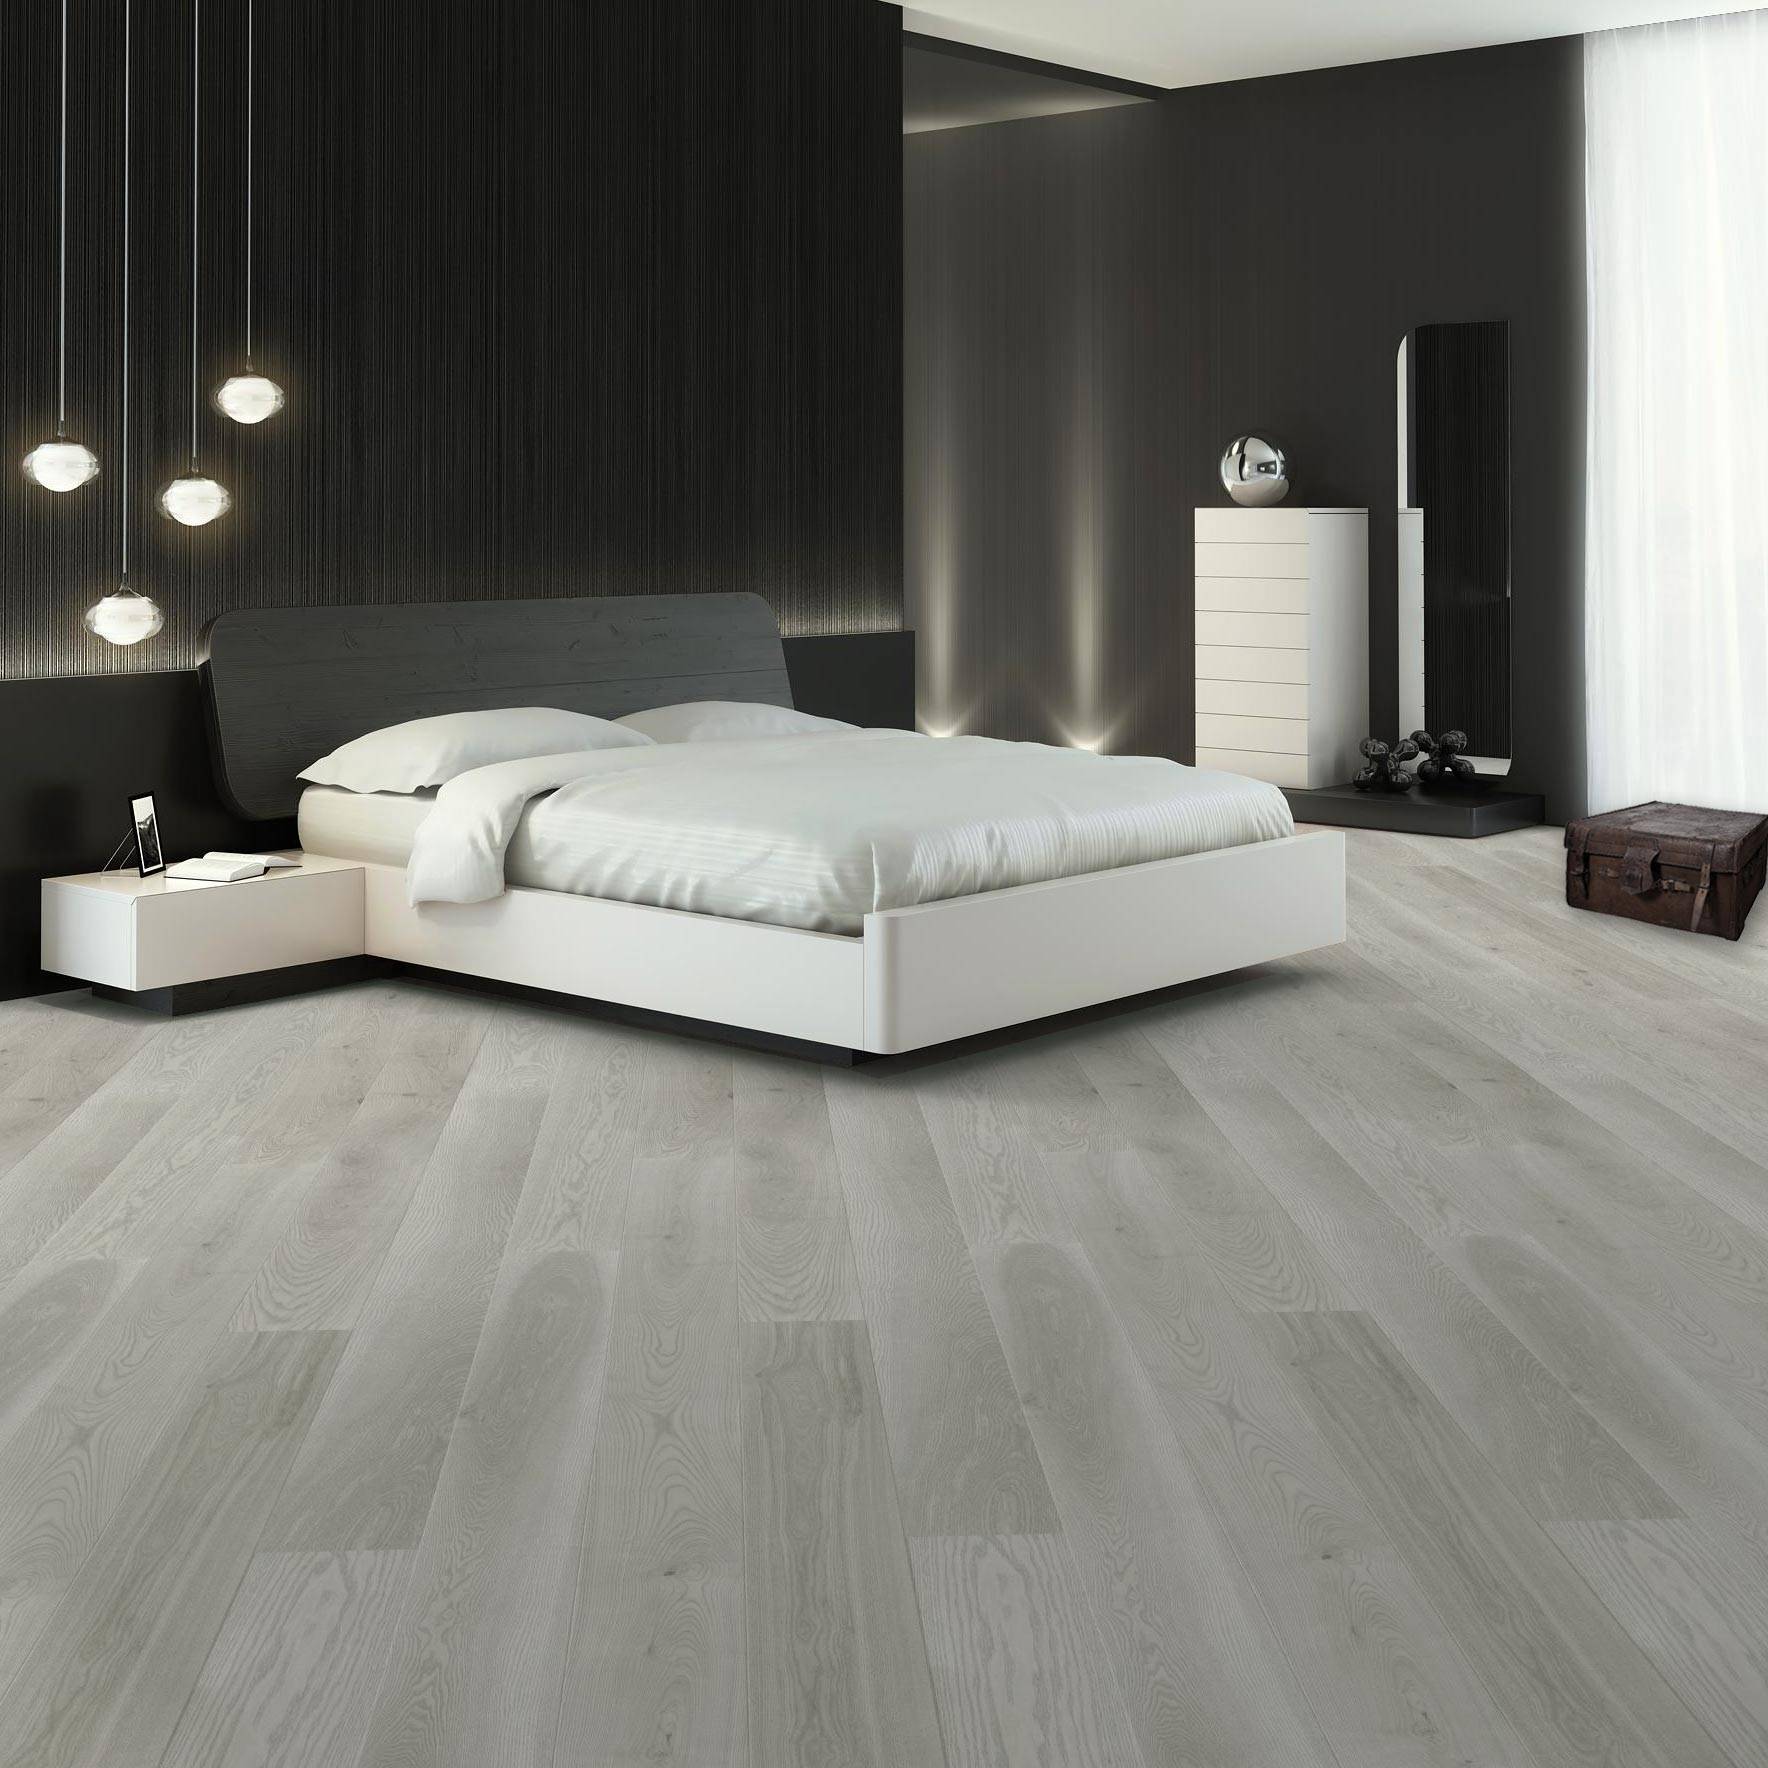 Sale Abbey Ruthin 14mm Grey Oak Matt Lacquered Click Engineered Floor